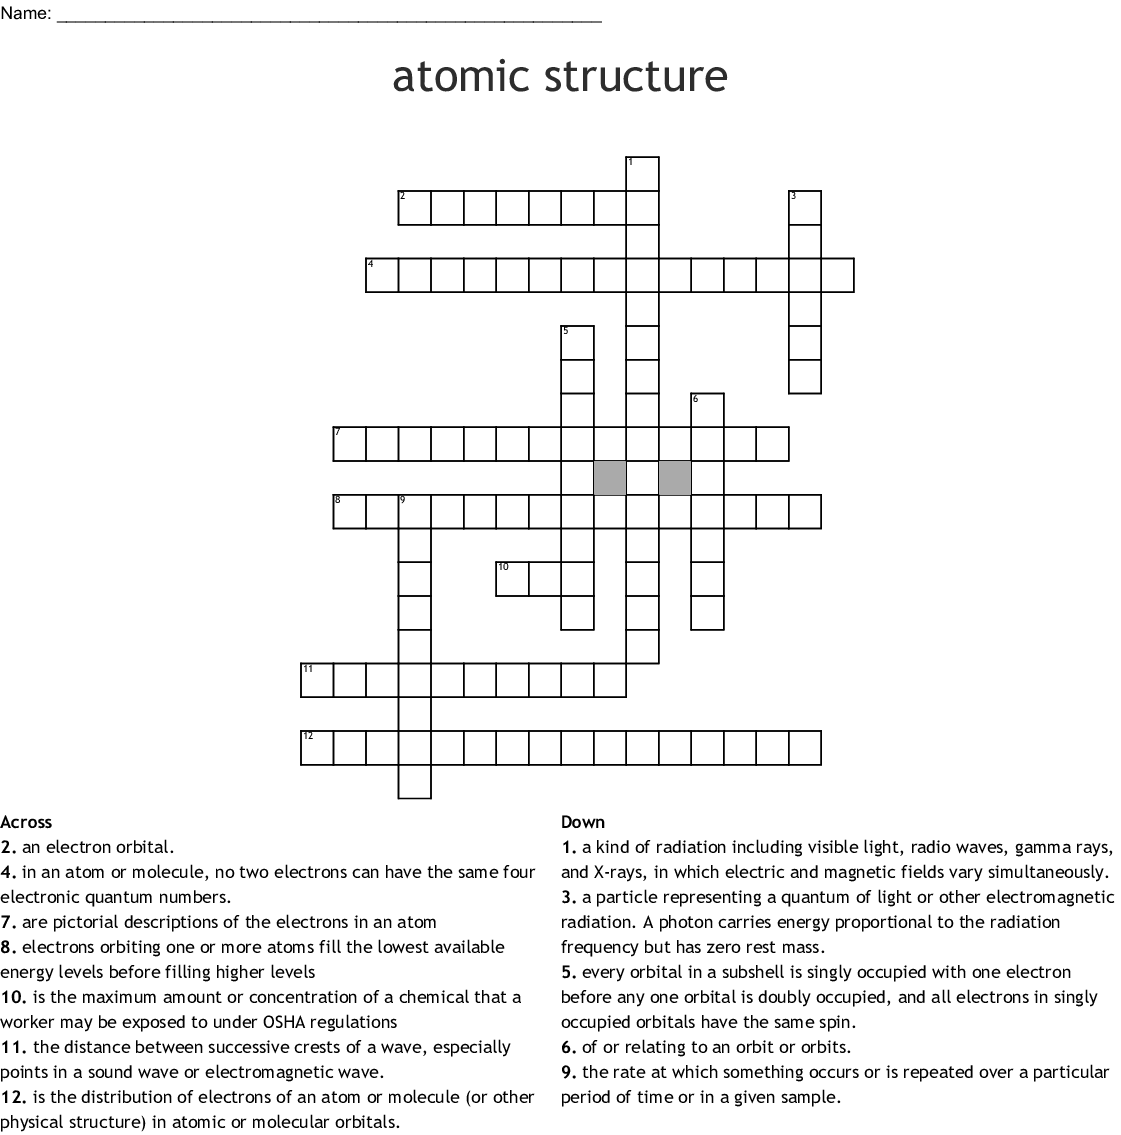 Unit 5 Word Search